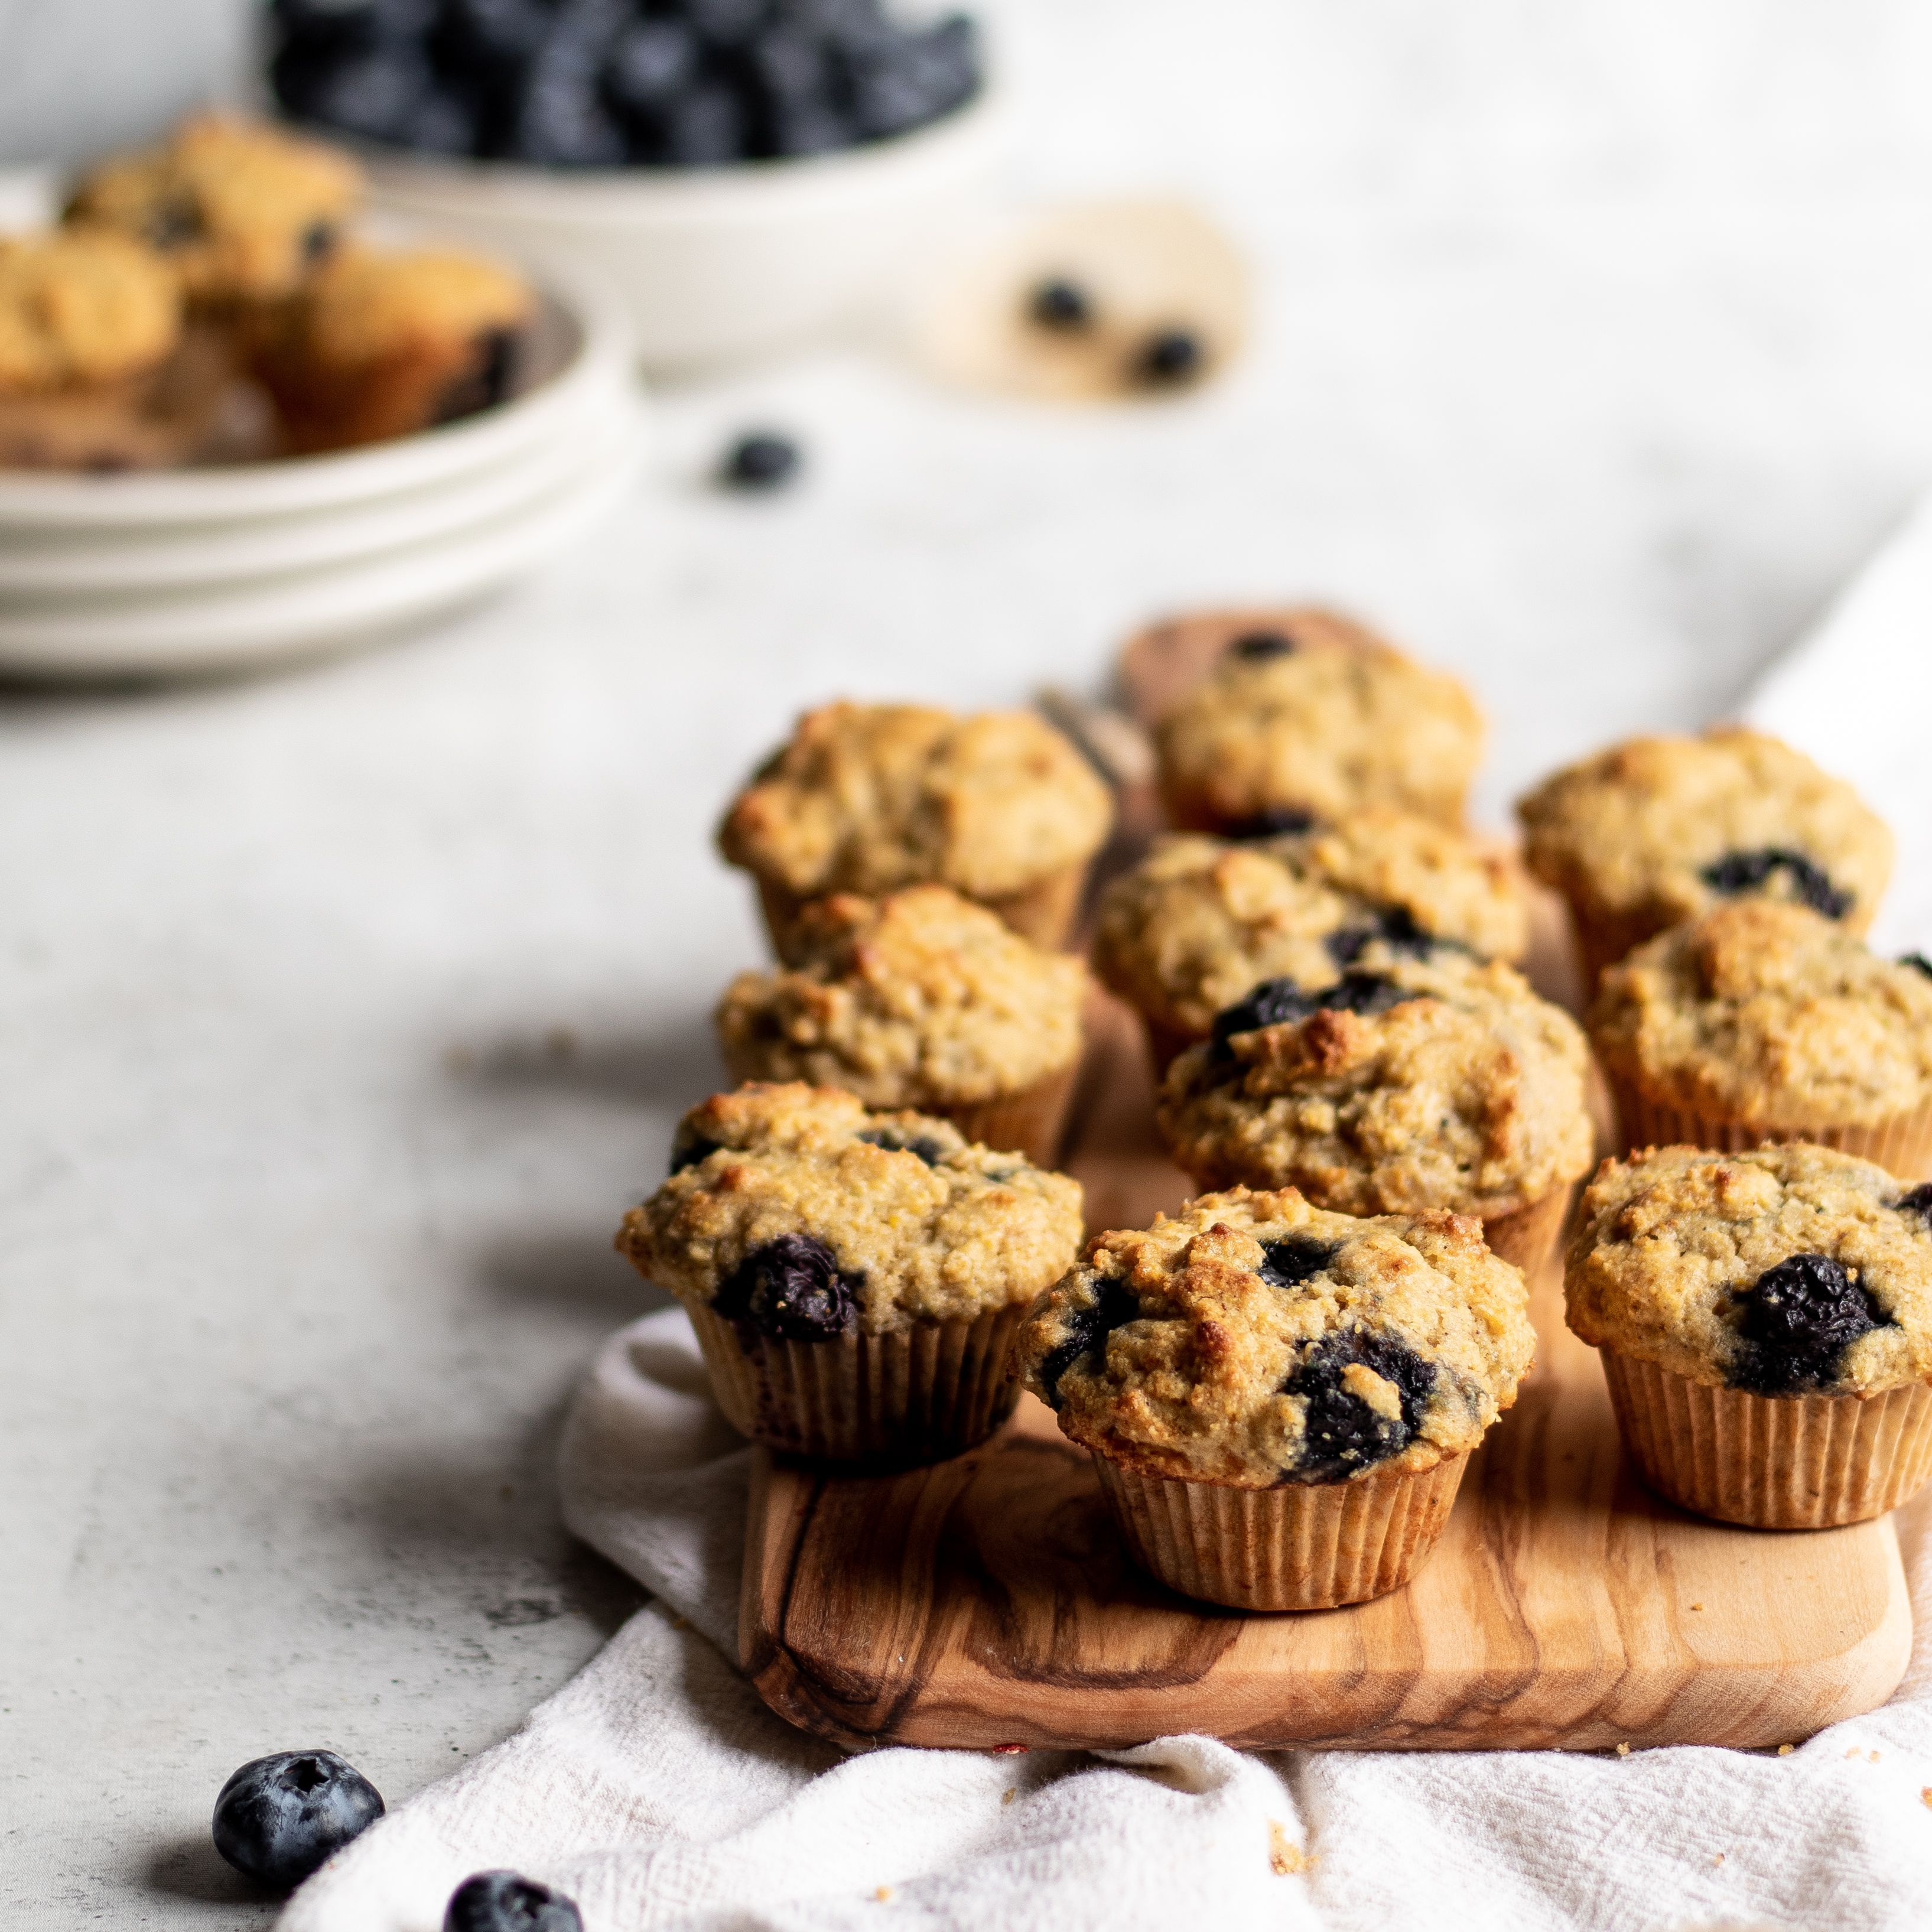 Mini Cornmeal Muffins with Blueberries